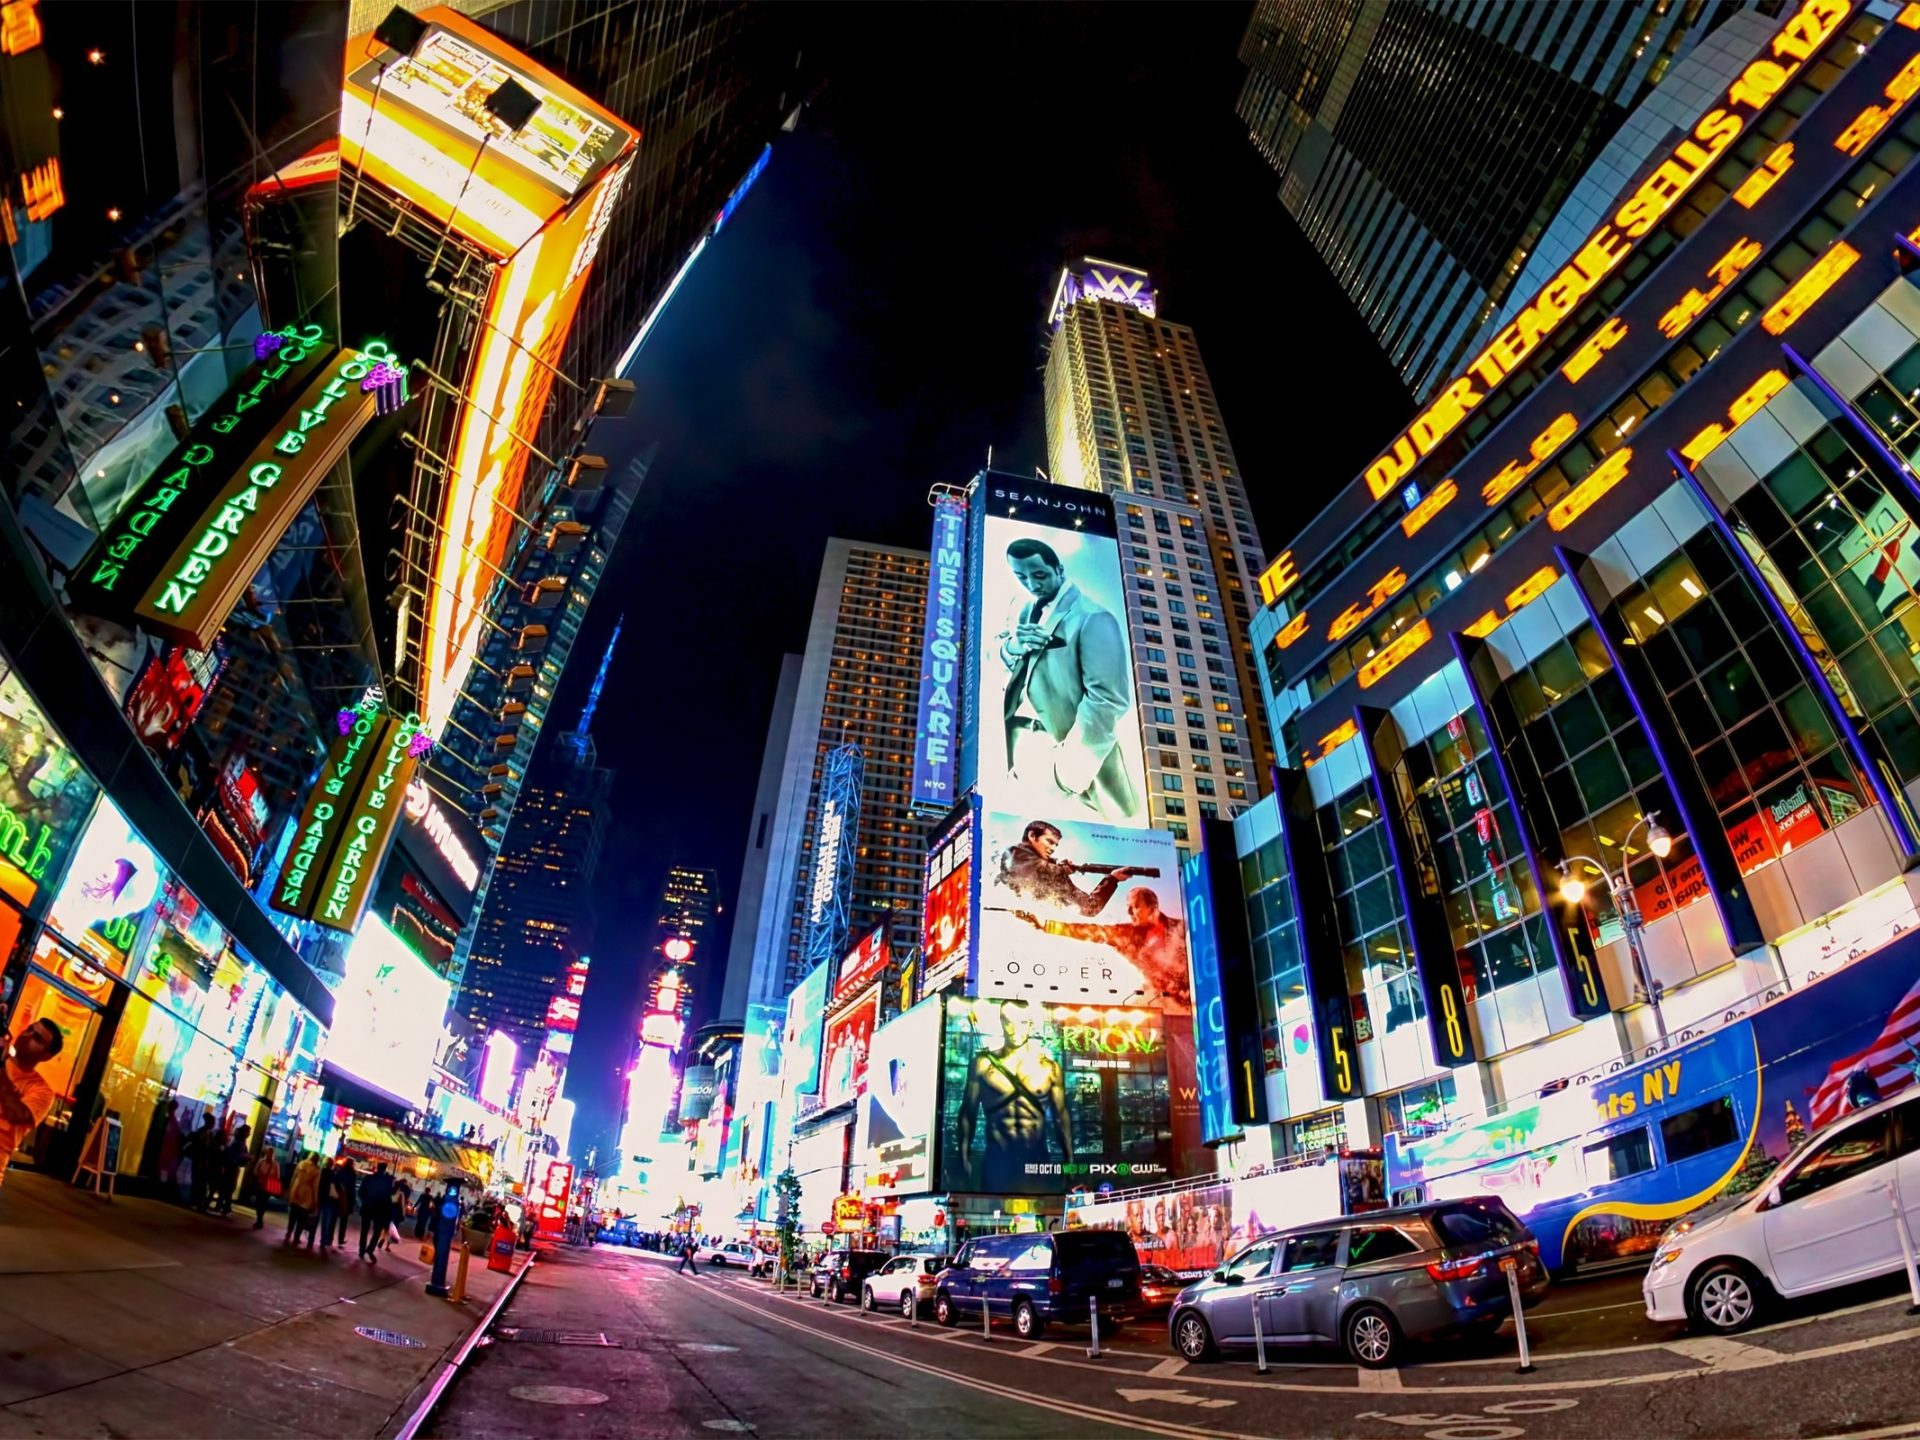 Iphone X New York Wallpaper Times Square At Night 256890 Wallpapers13 Com